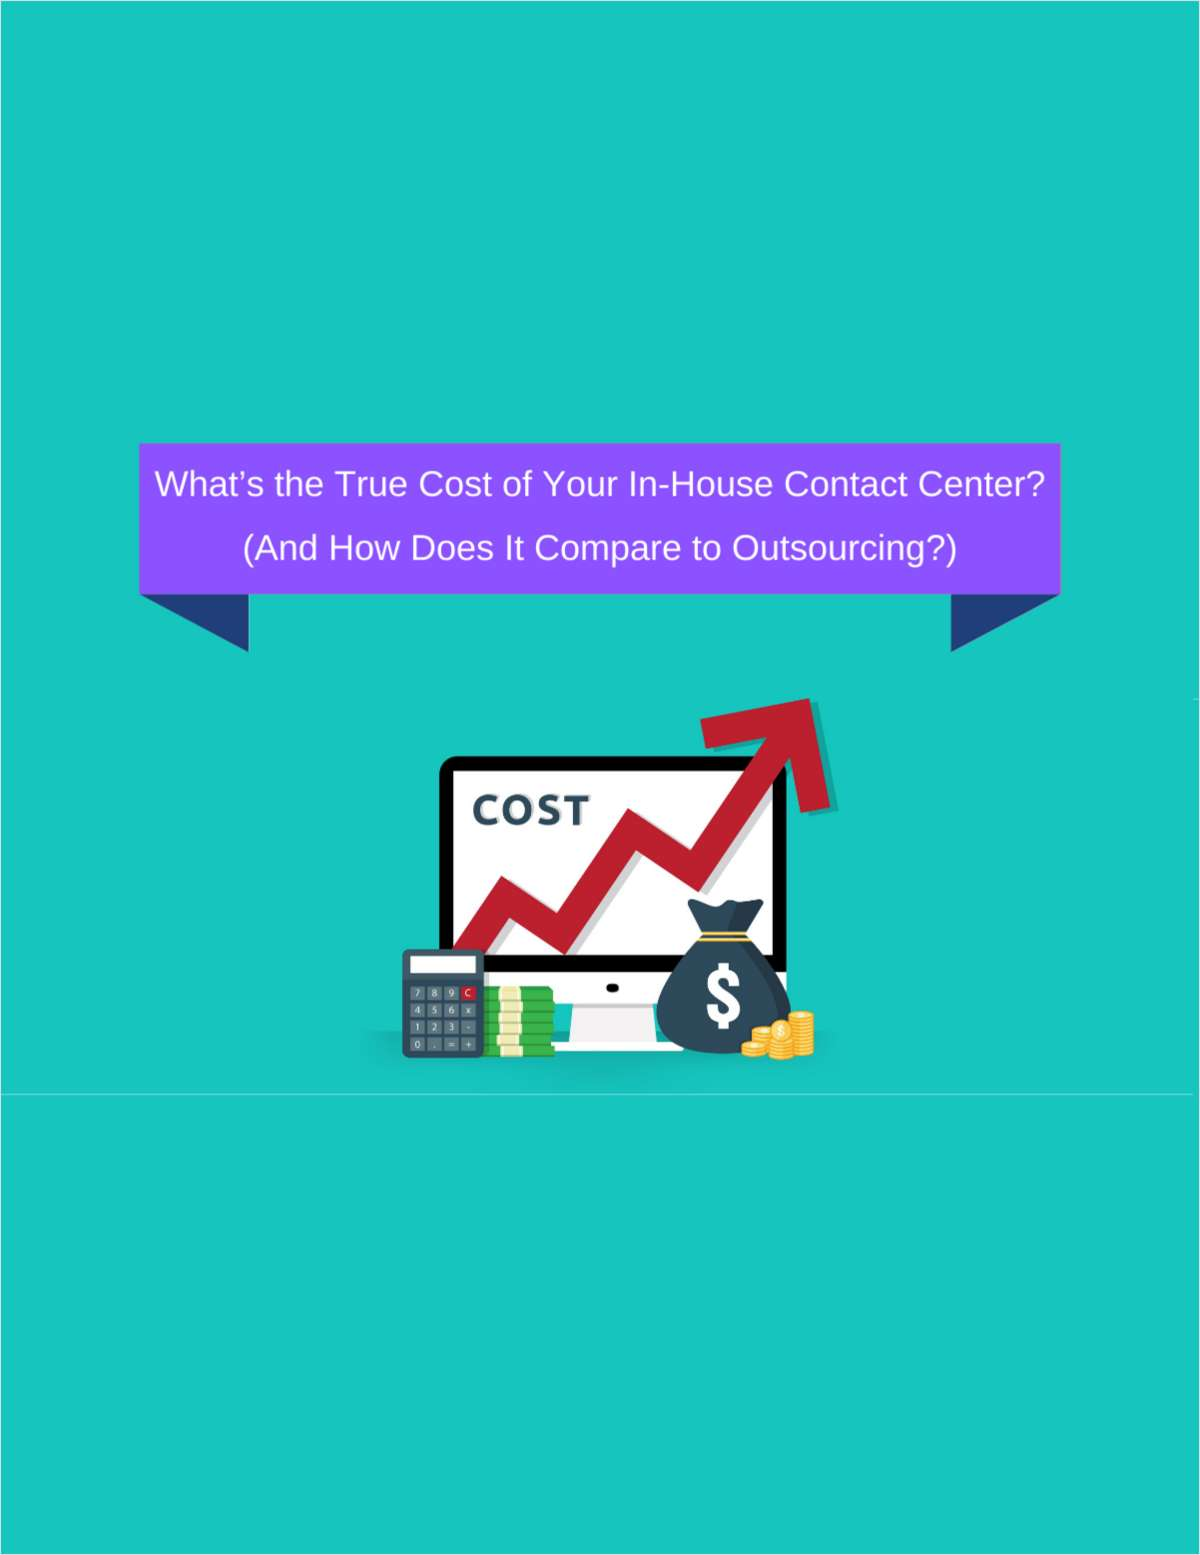 What's the True Cost of Your In-House Contact Center? (And How Does It Compare to Outsourcing?)